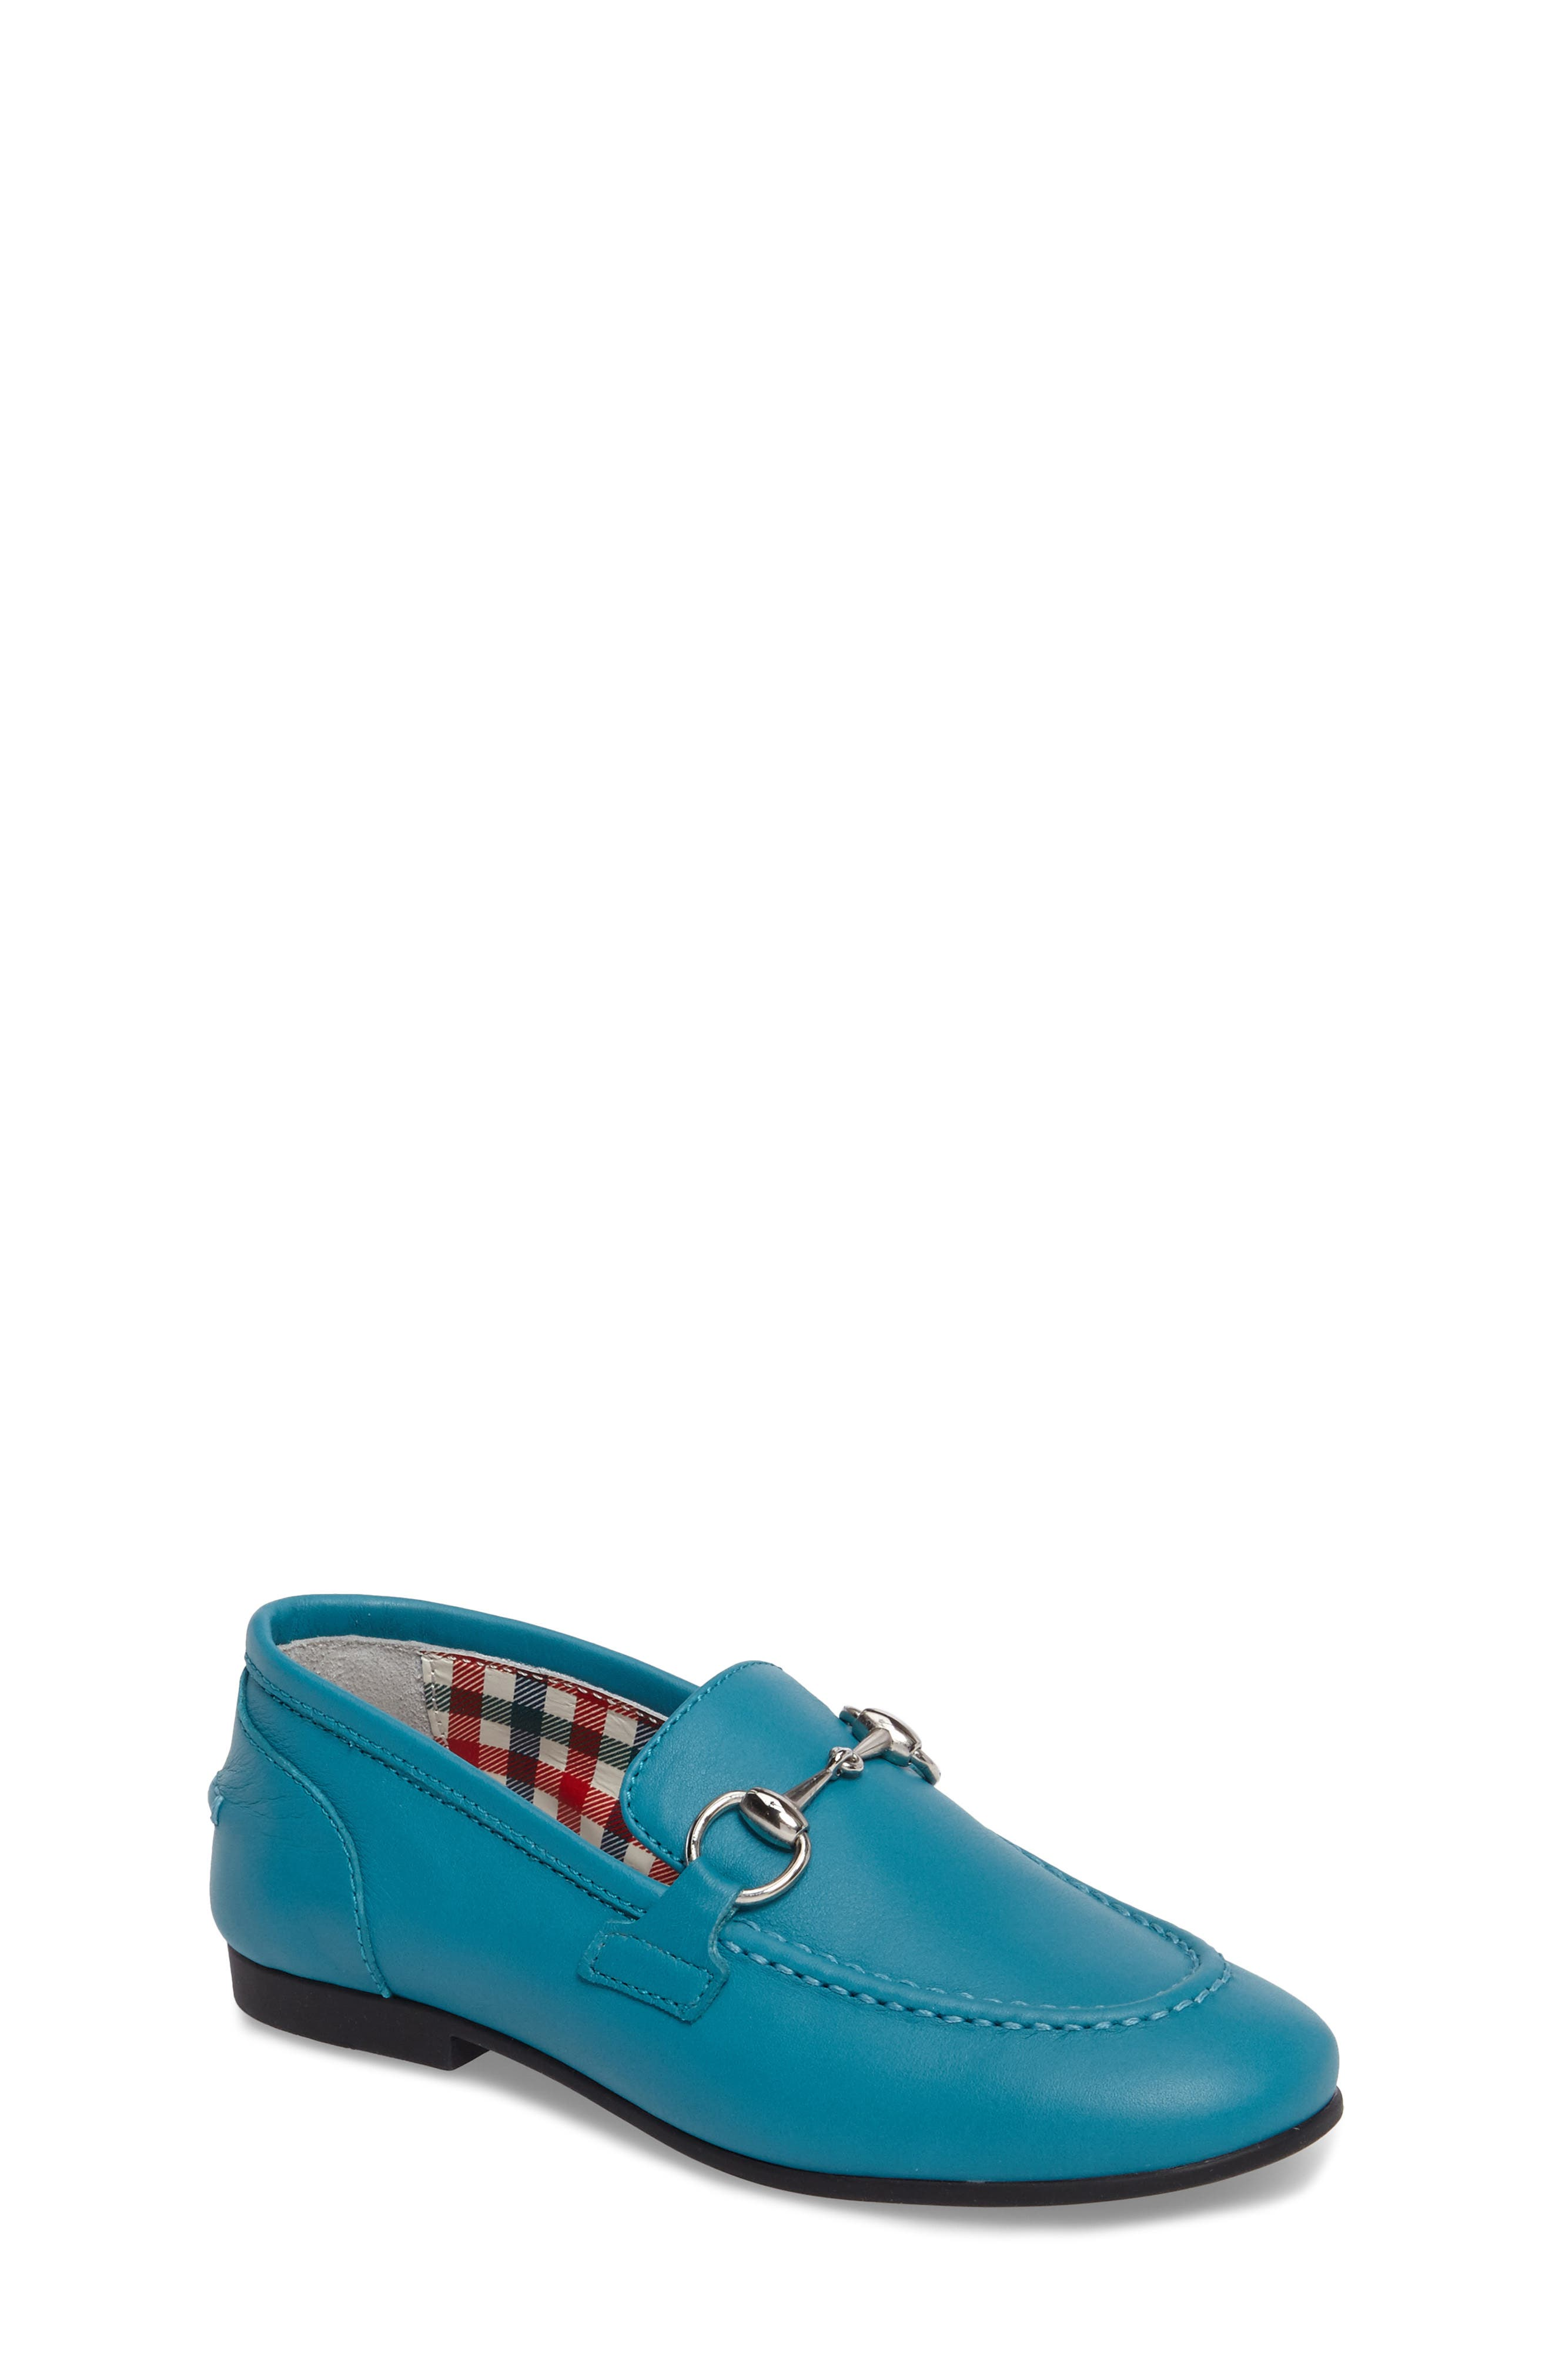 Alternate Image 1 Selected - Gucci Jordaan Bit Loafer (Toddler & Little Kid)